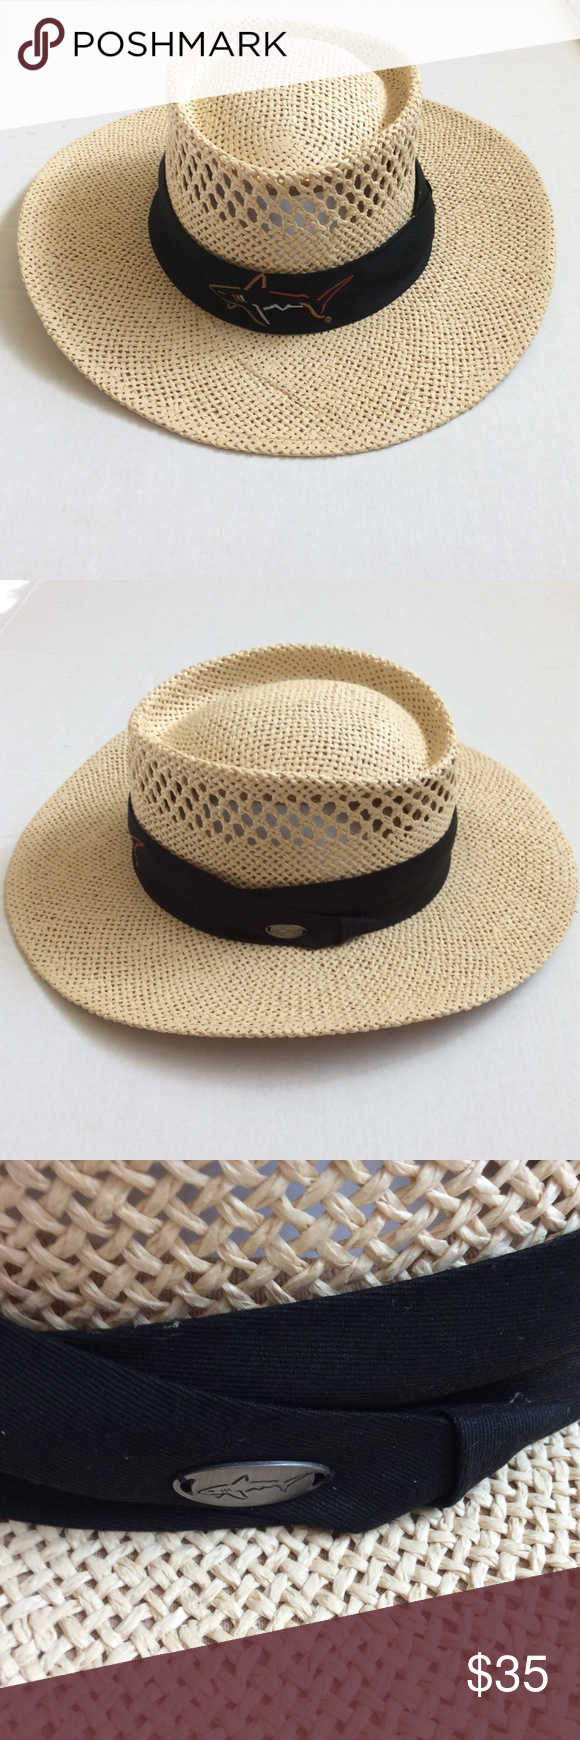 Greg Norman Signature Straw Hat Breathable Os Straw Hat Greg Norman Lightweight Tops